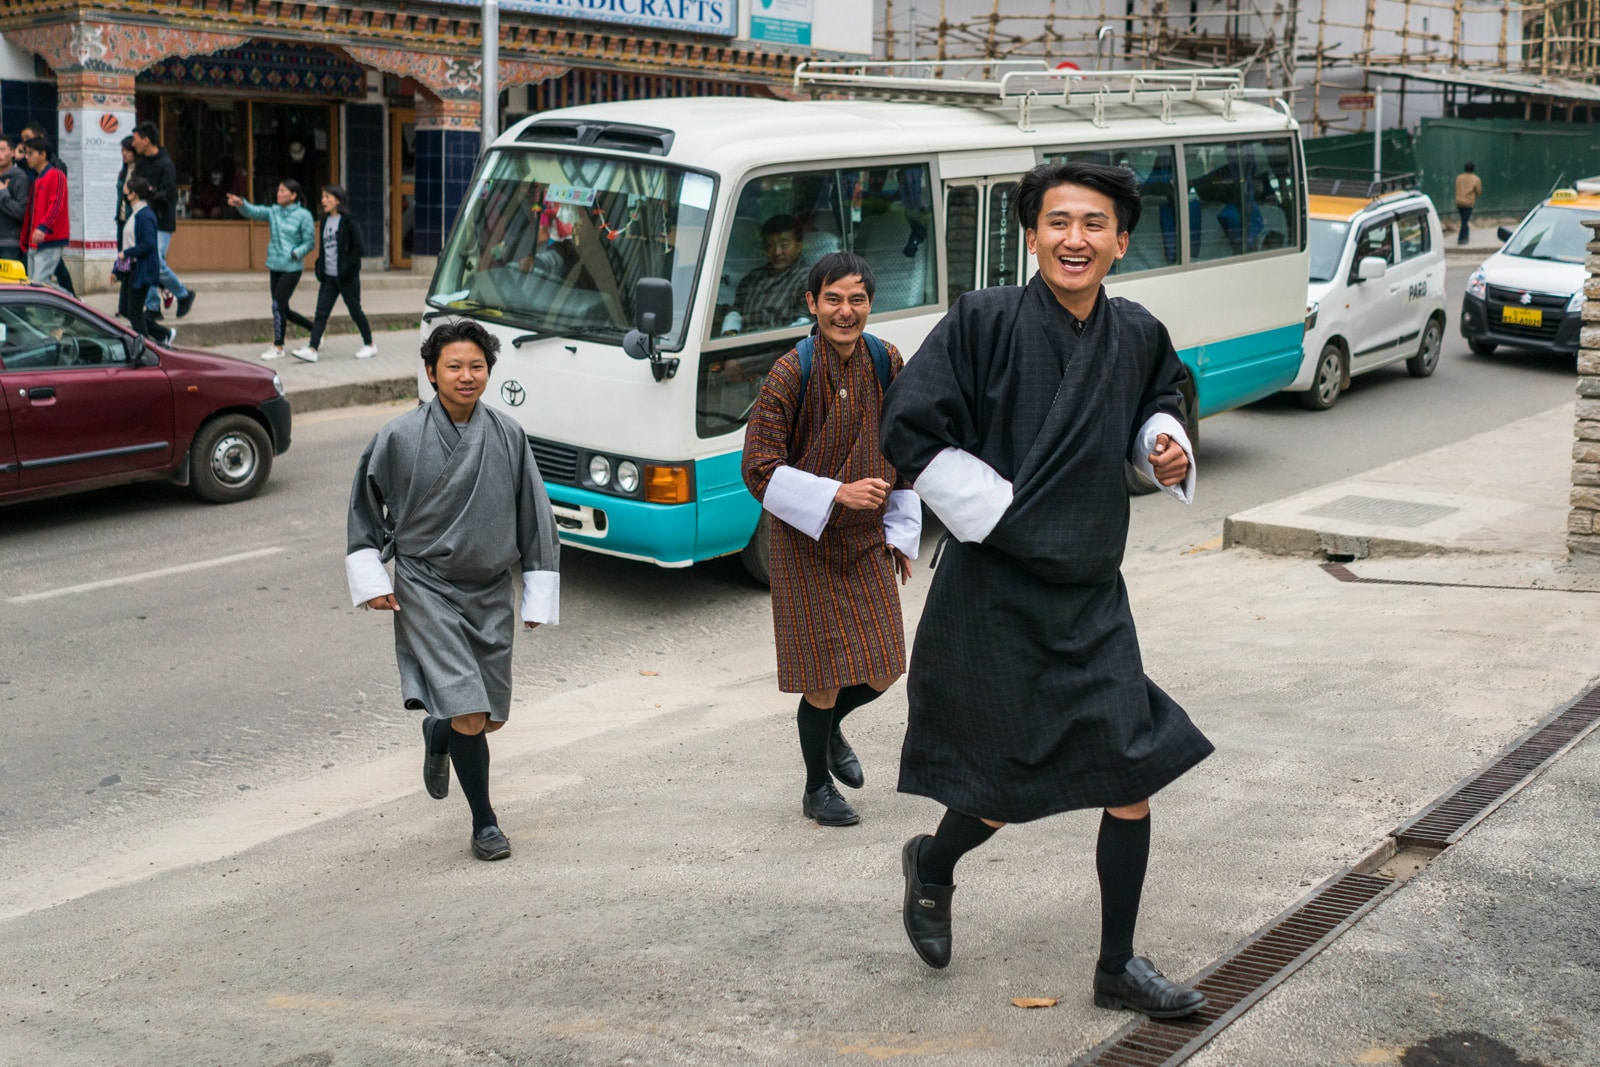 What it's like to go on a guided tour in Bhutan - Three tour guides walking on the streets of Thimphu - Lost With Purpose travel blog